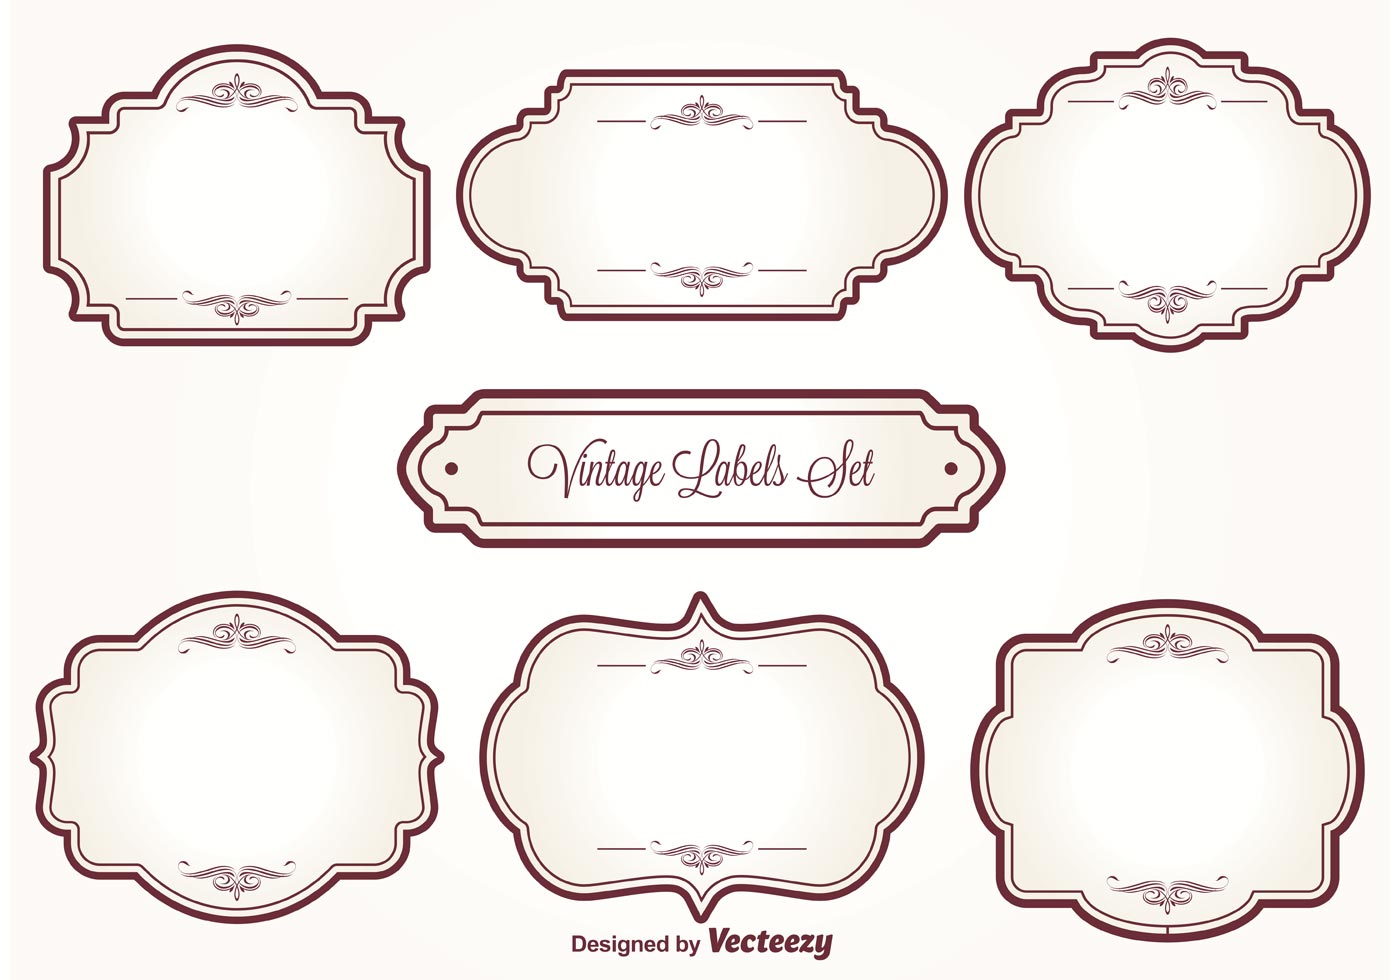 Vintage Label Free Vector Art.